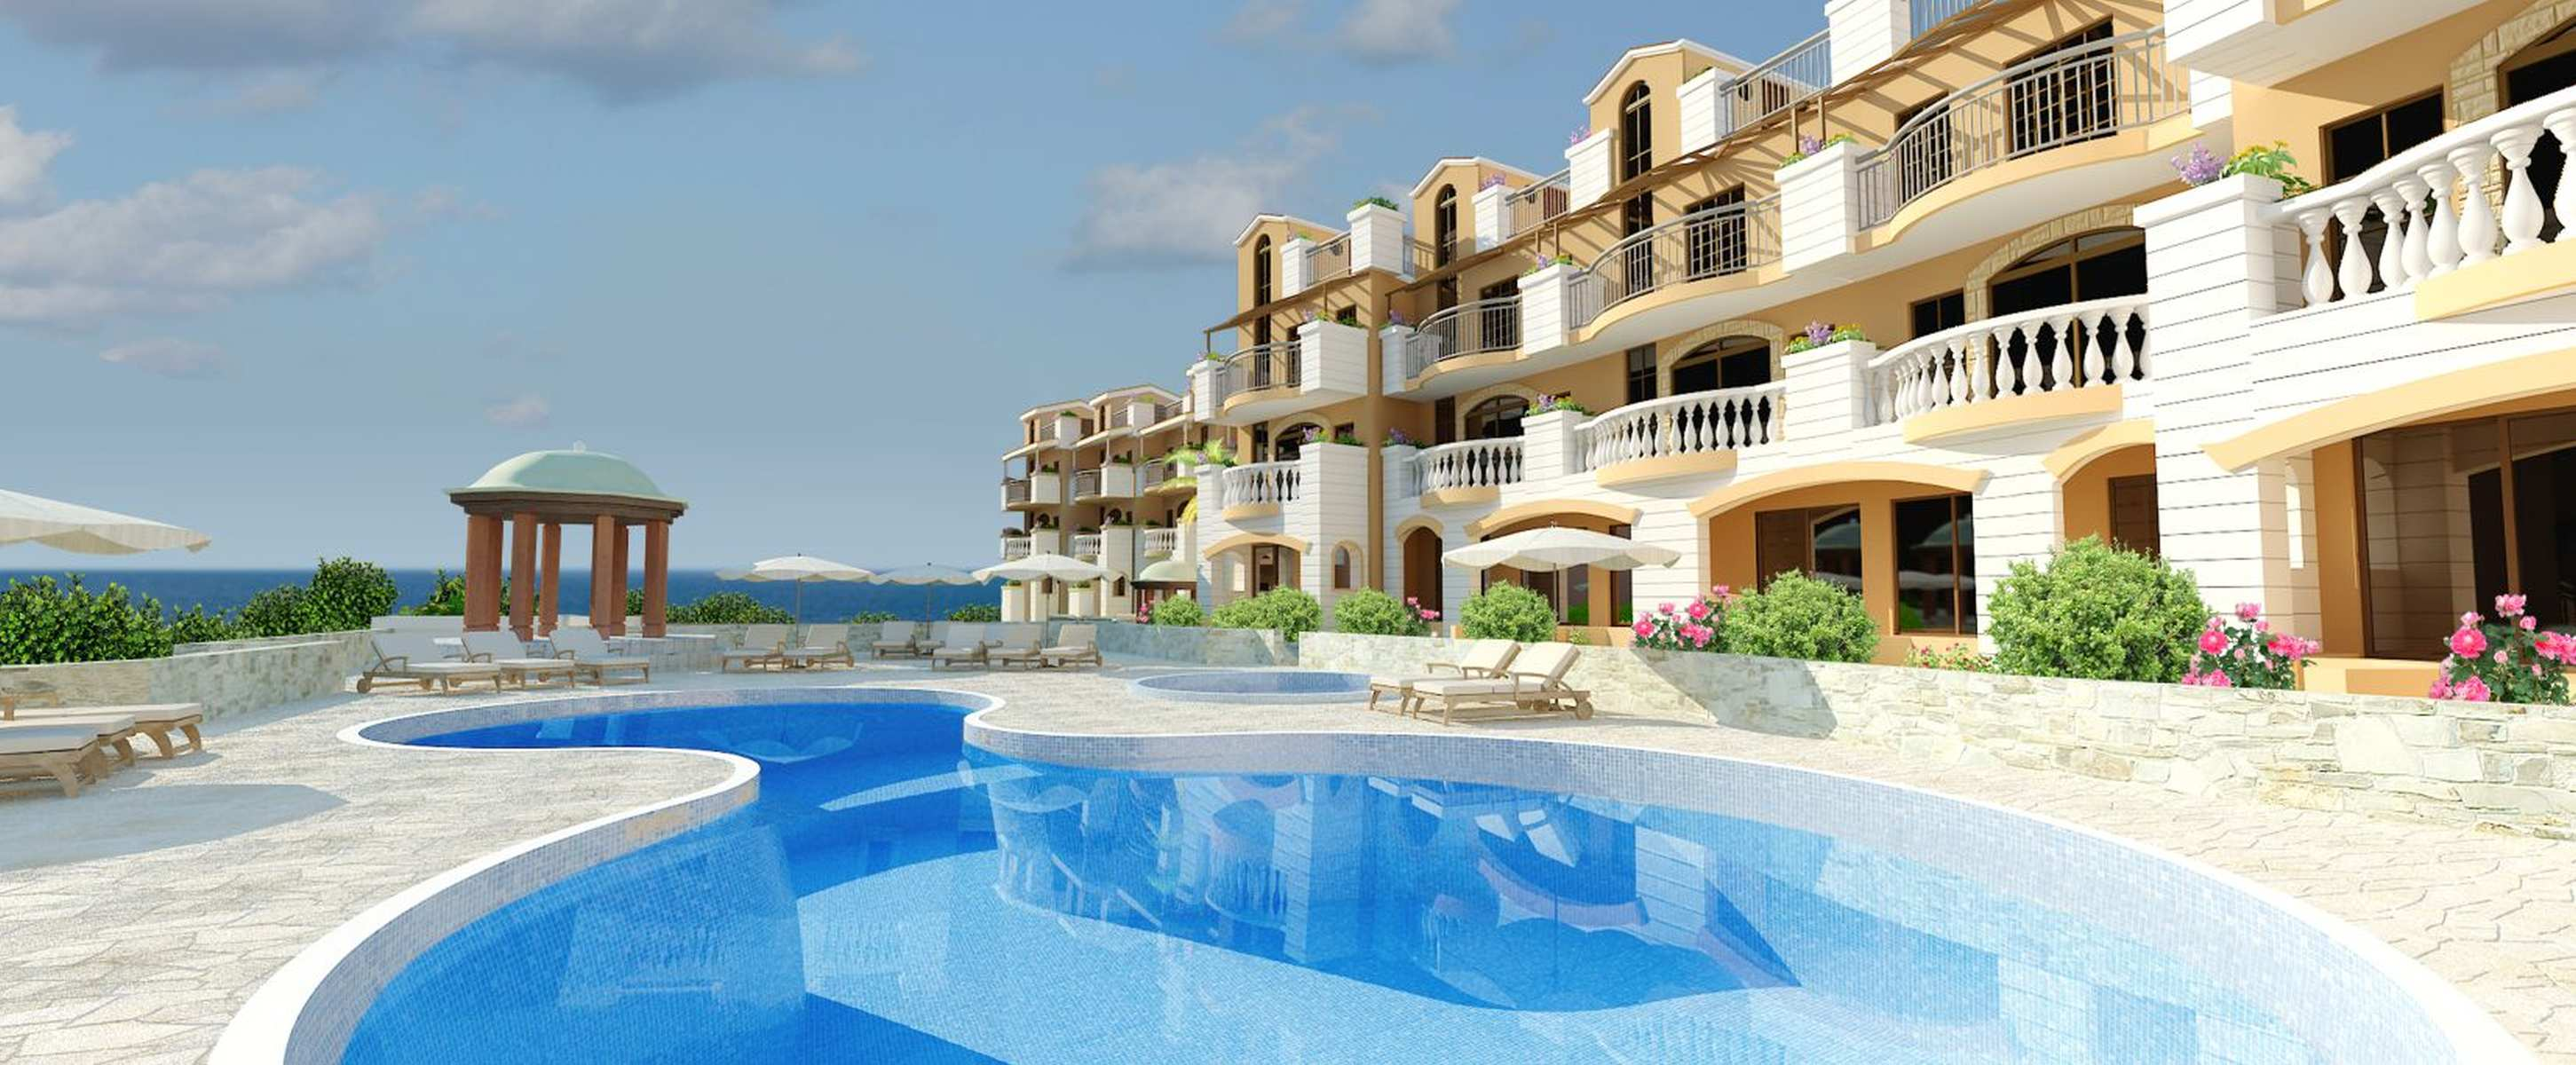 Townhouse in a prestigious residential complex in Paphos